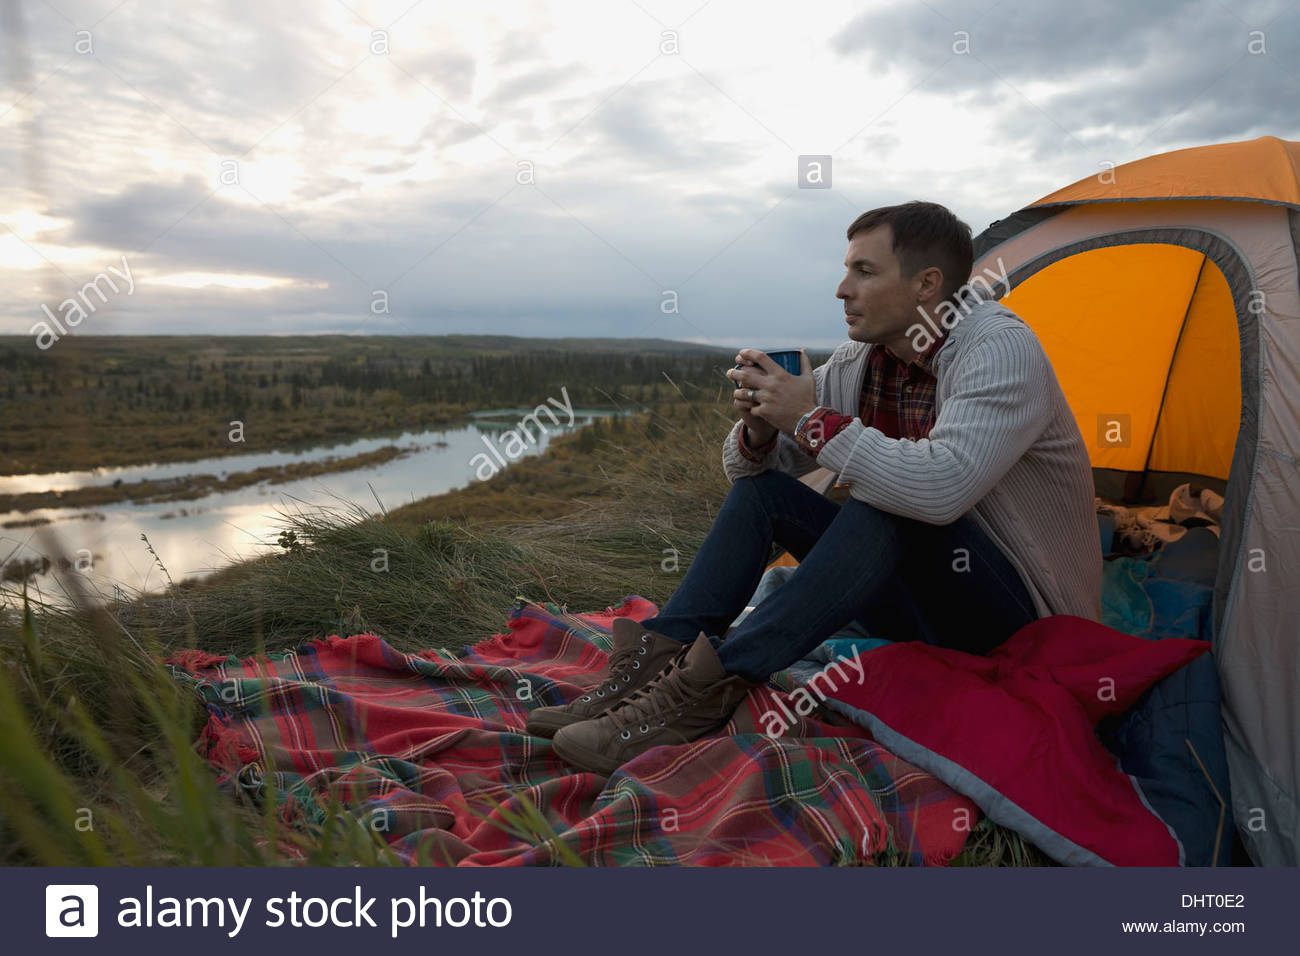 Full length of man having coffee at campsite - Stock Image